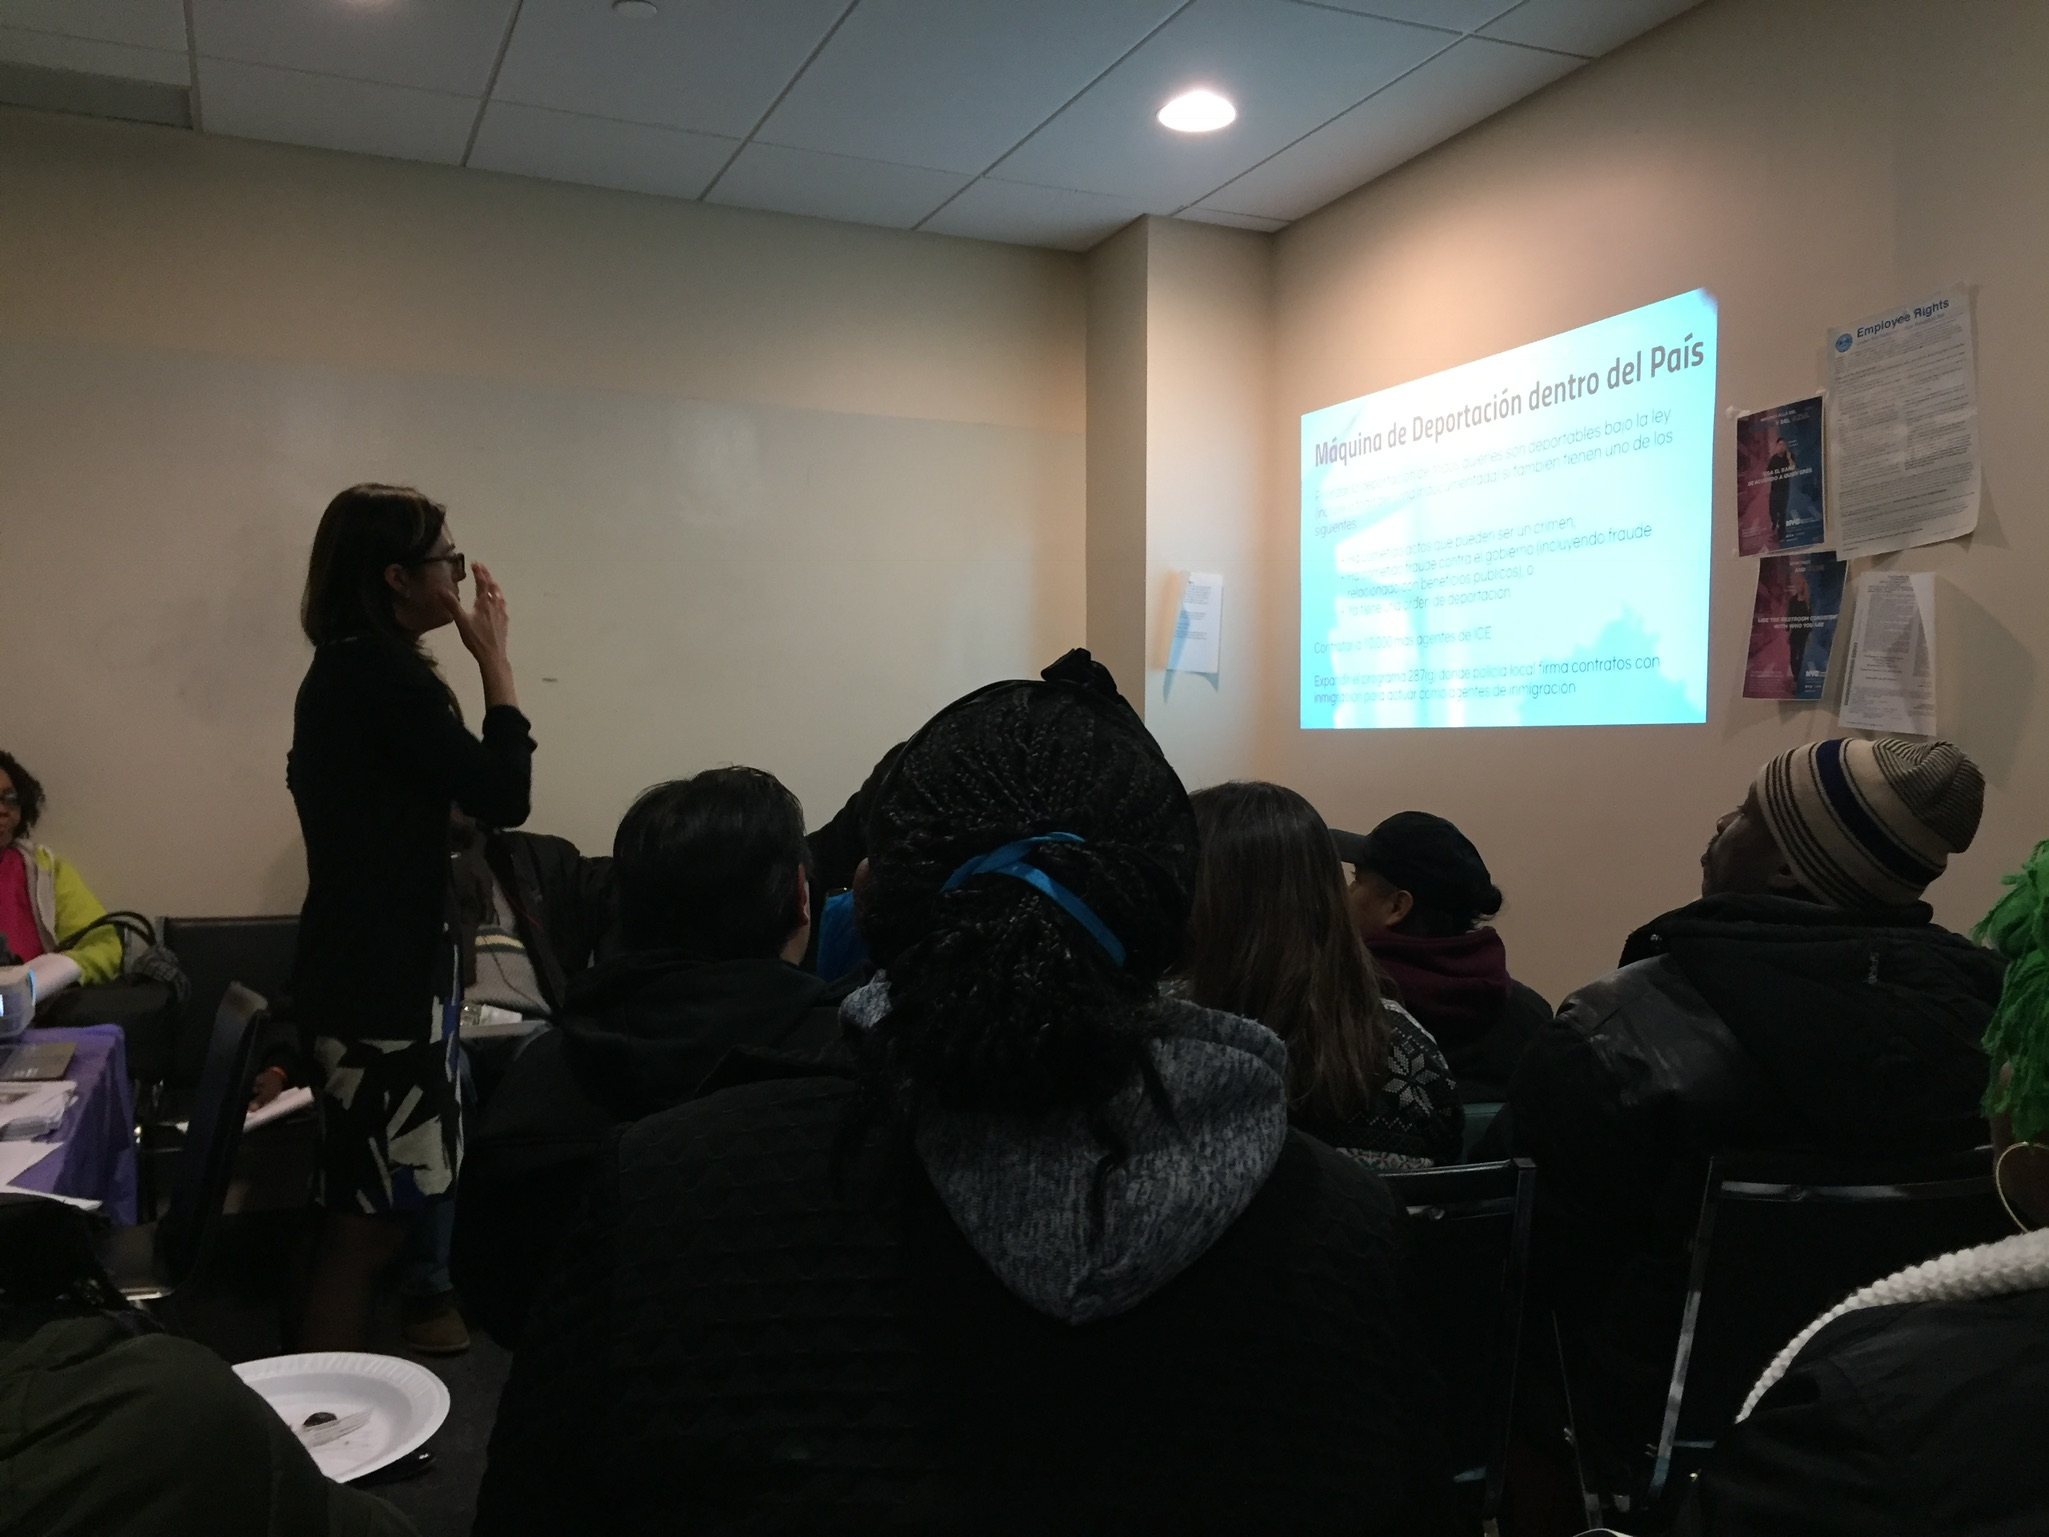 Participants gained information during the BIP Know Your Rights presentation.